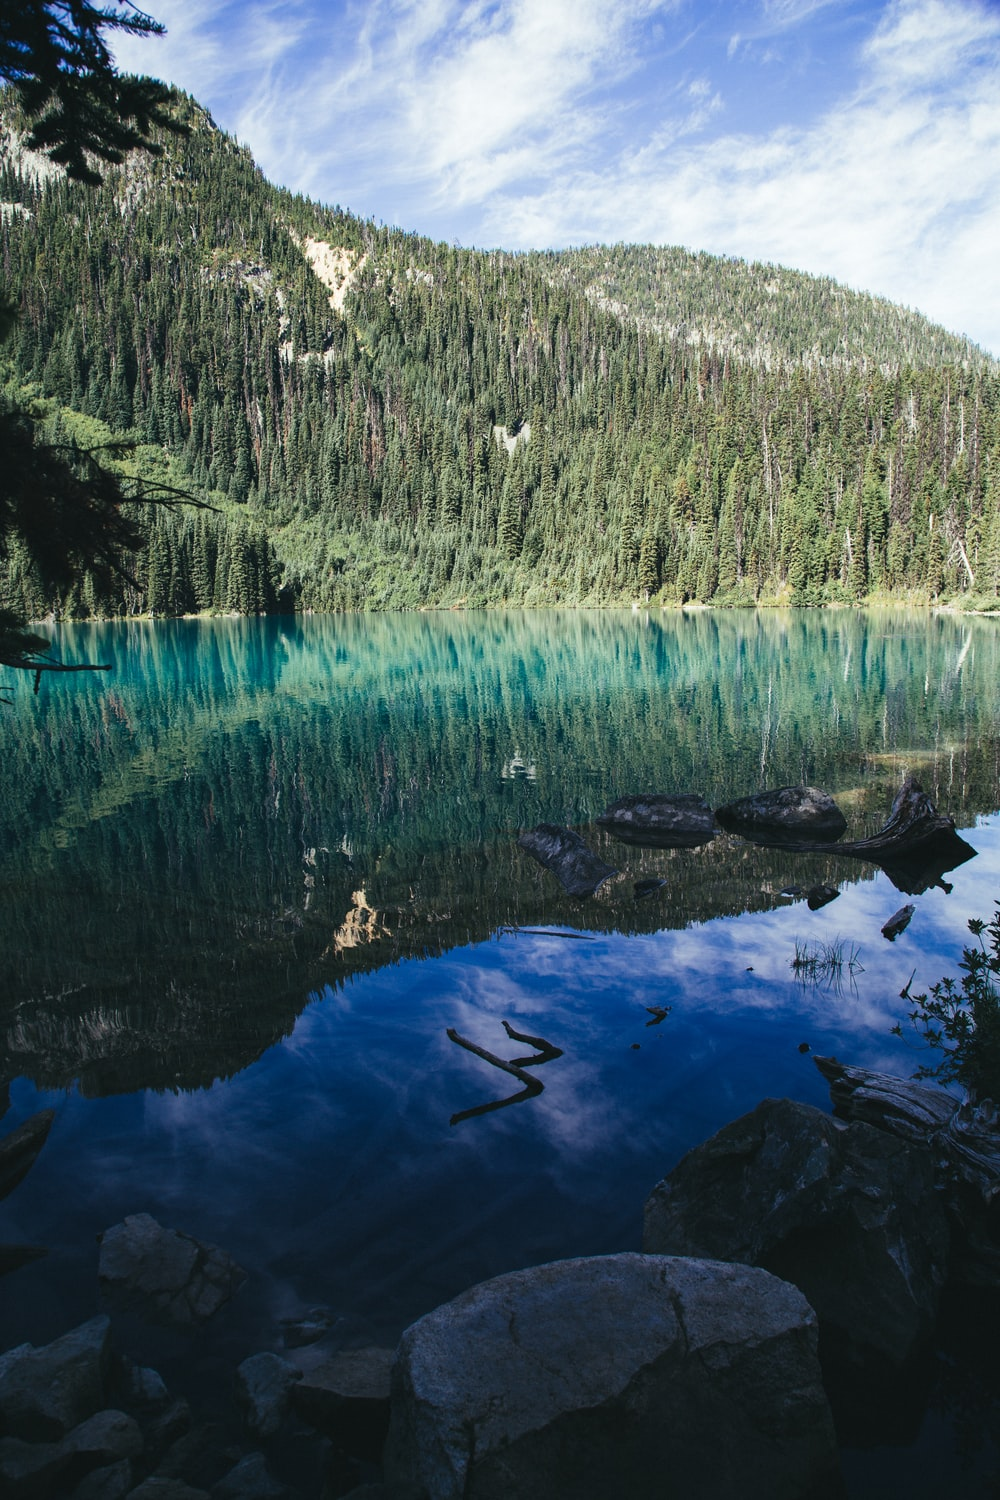 nature photography of pine trees surrounding body of water during daytime